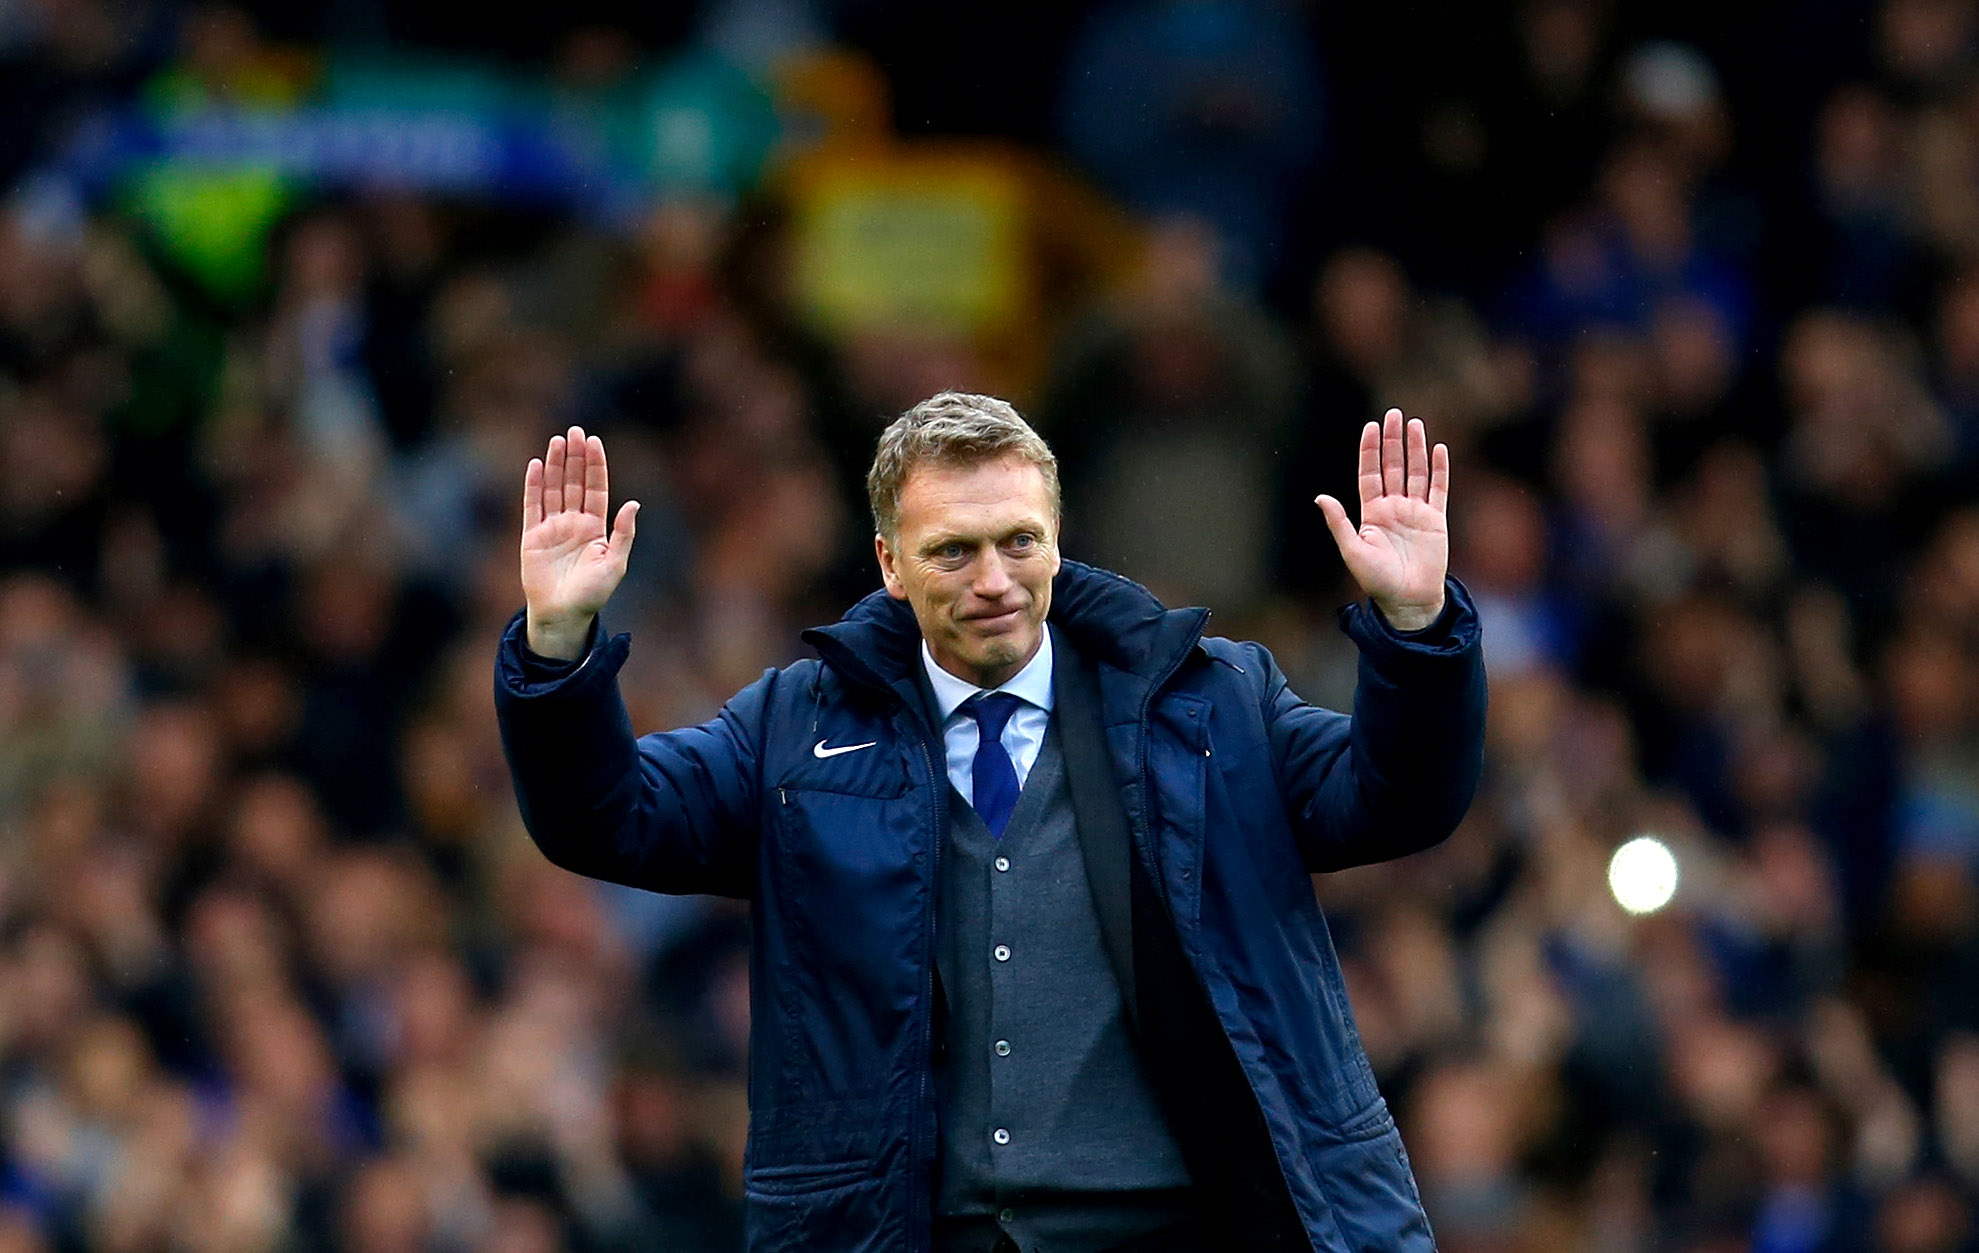 Everton would be making a huge mistake if they appointed David Moyes as manager